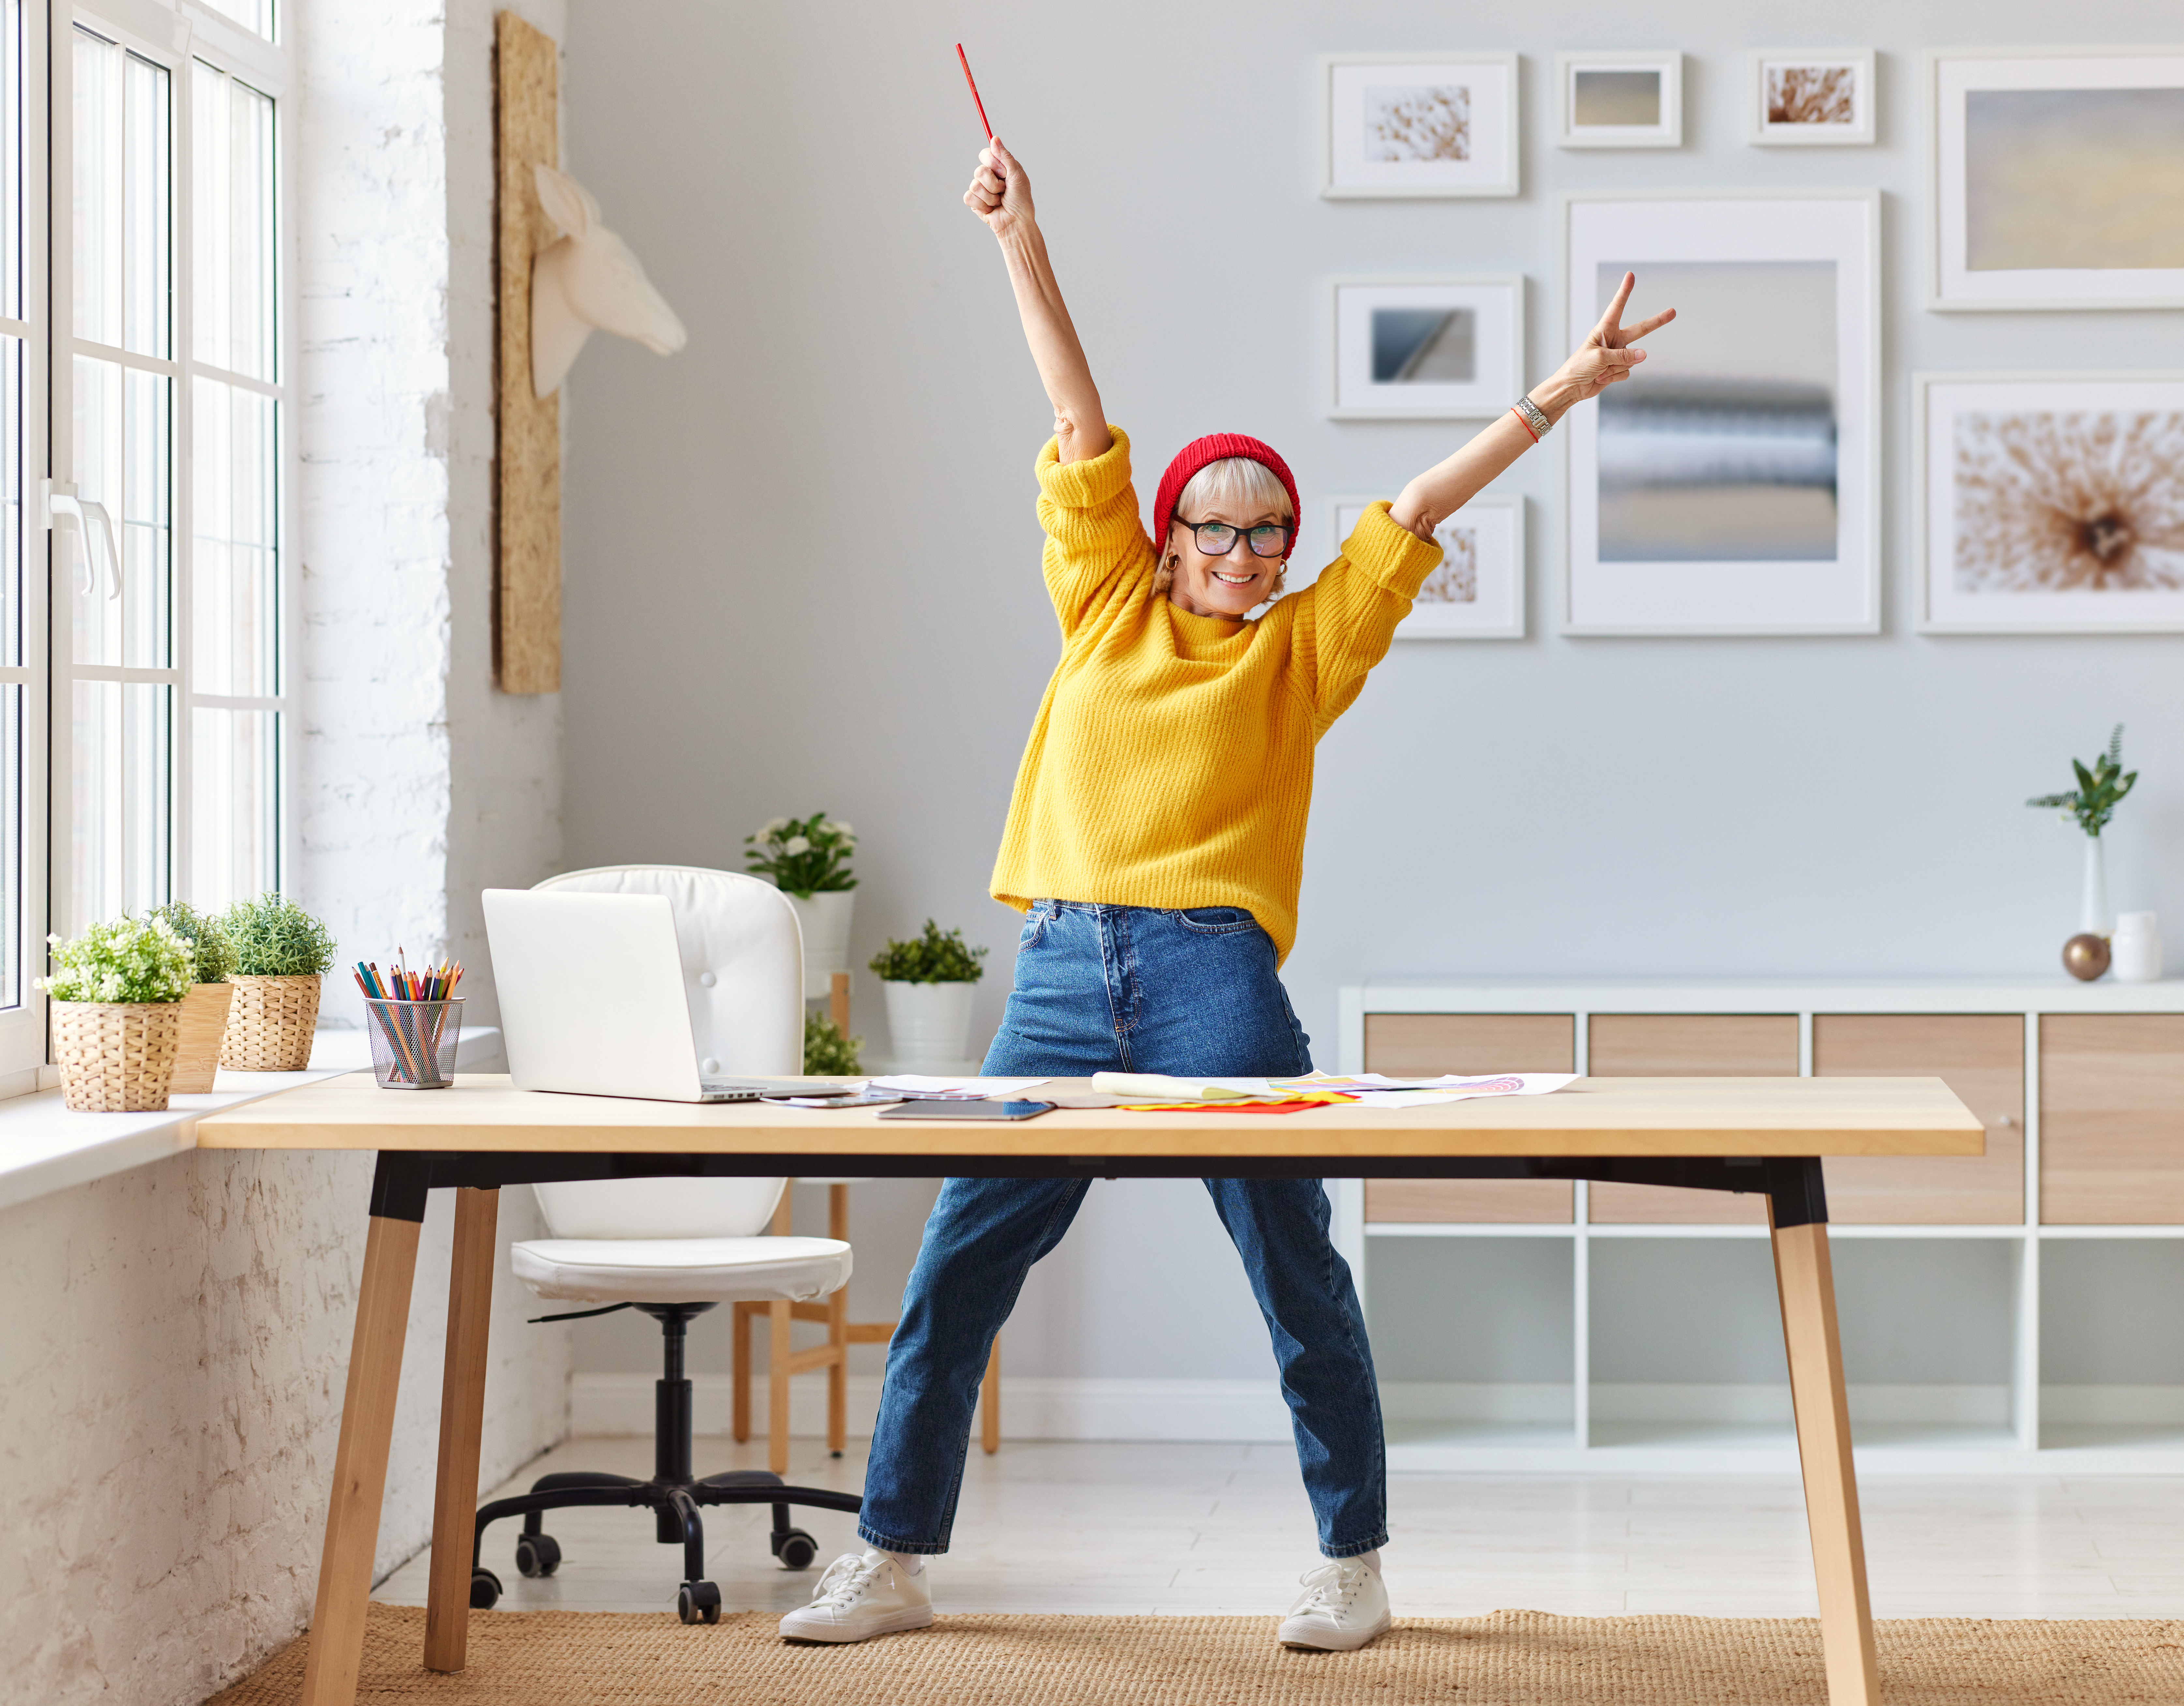 cheerful elderly woman freelancer creative designer in a red hat having fun and dancing in workplace.